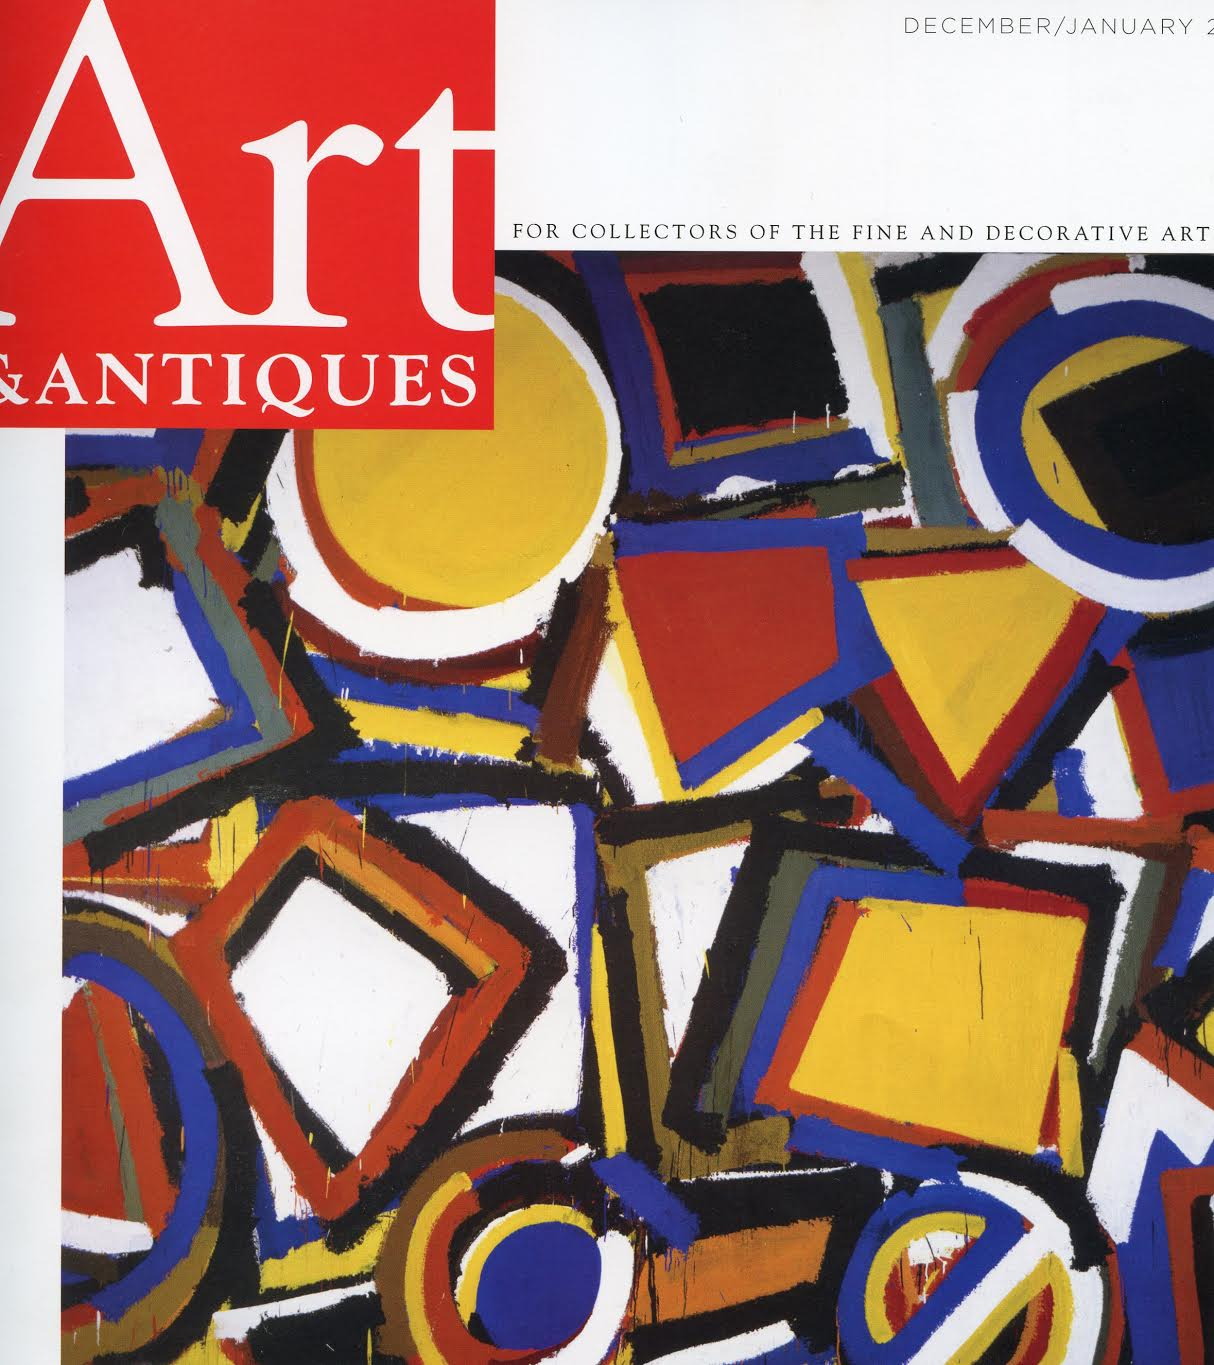 Art Antiques magazine cover with lost of colorful shapes